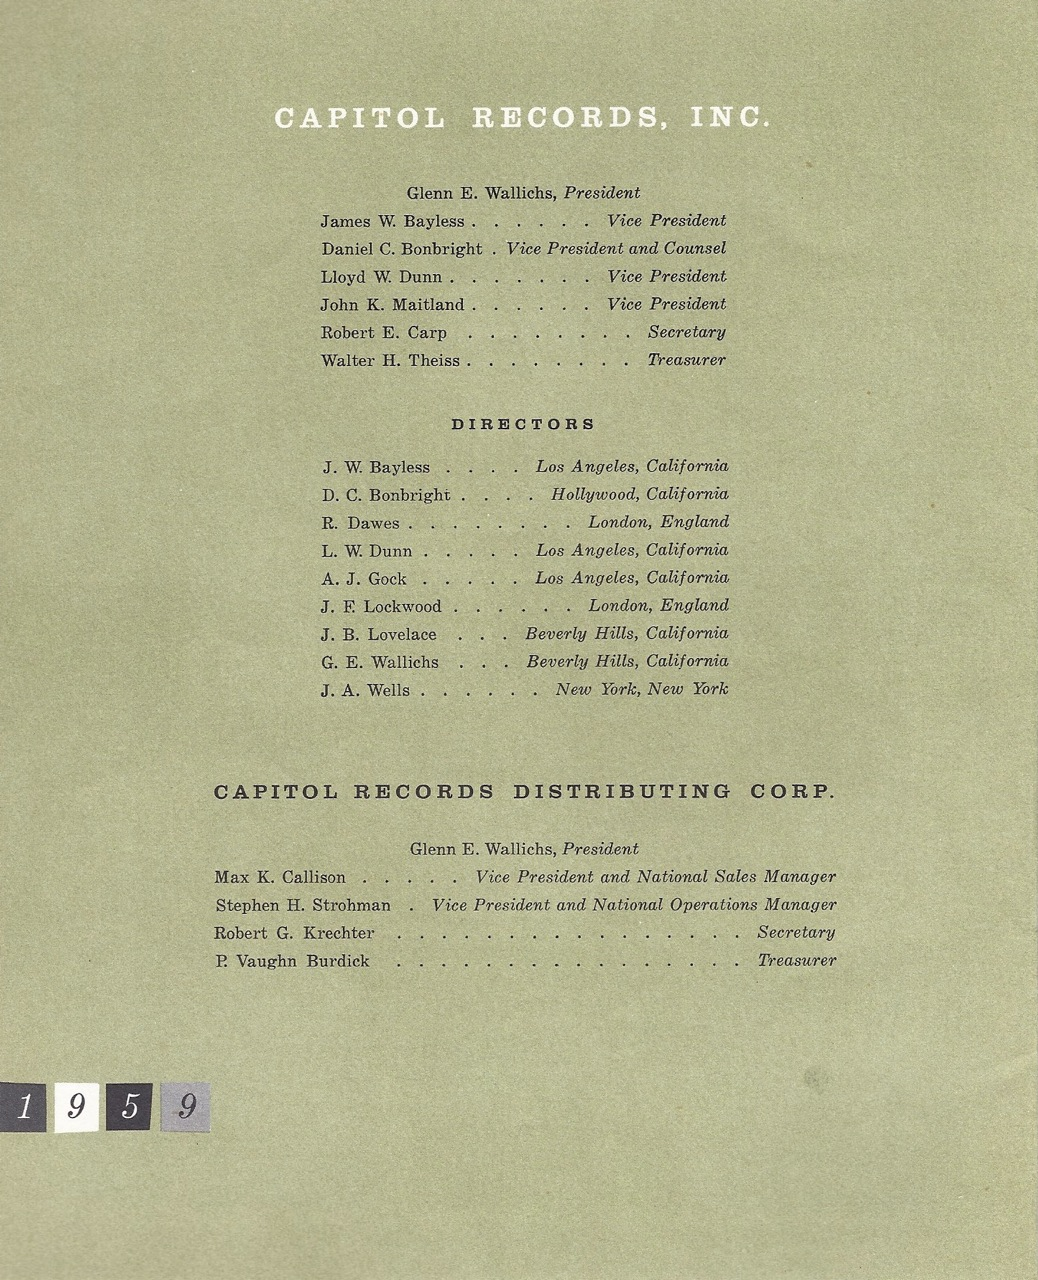 1959june30-annualreport-1